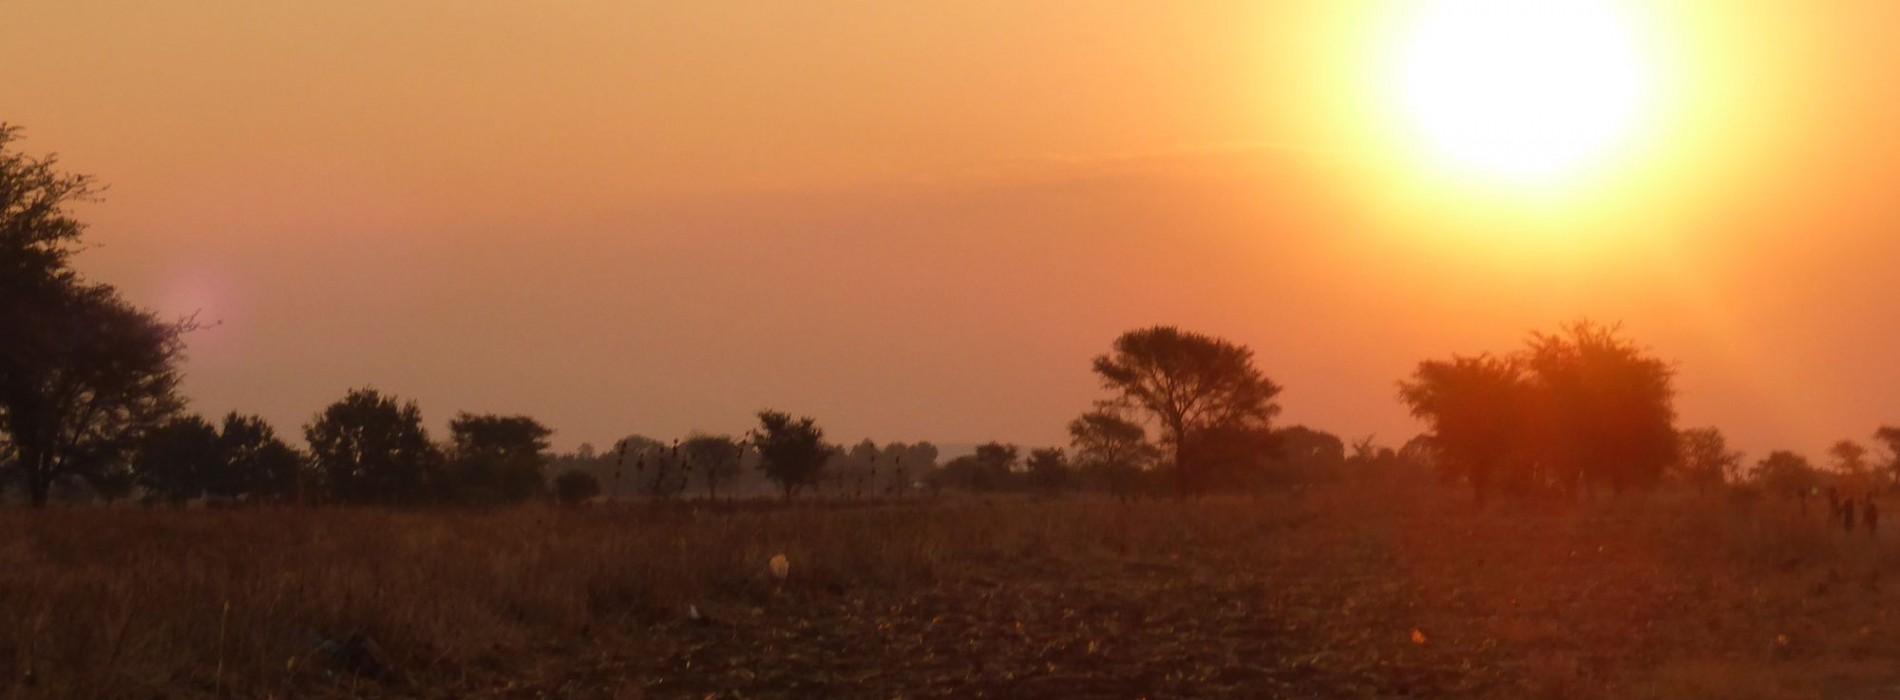 Watching the sunset in Zambia